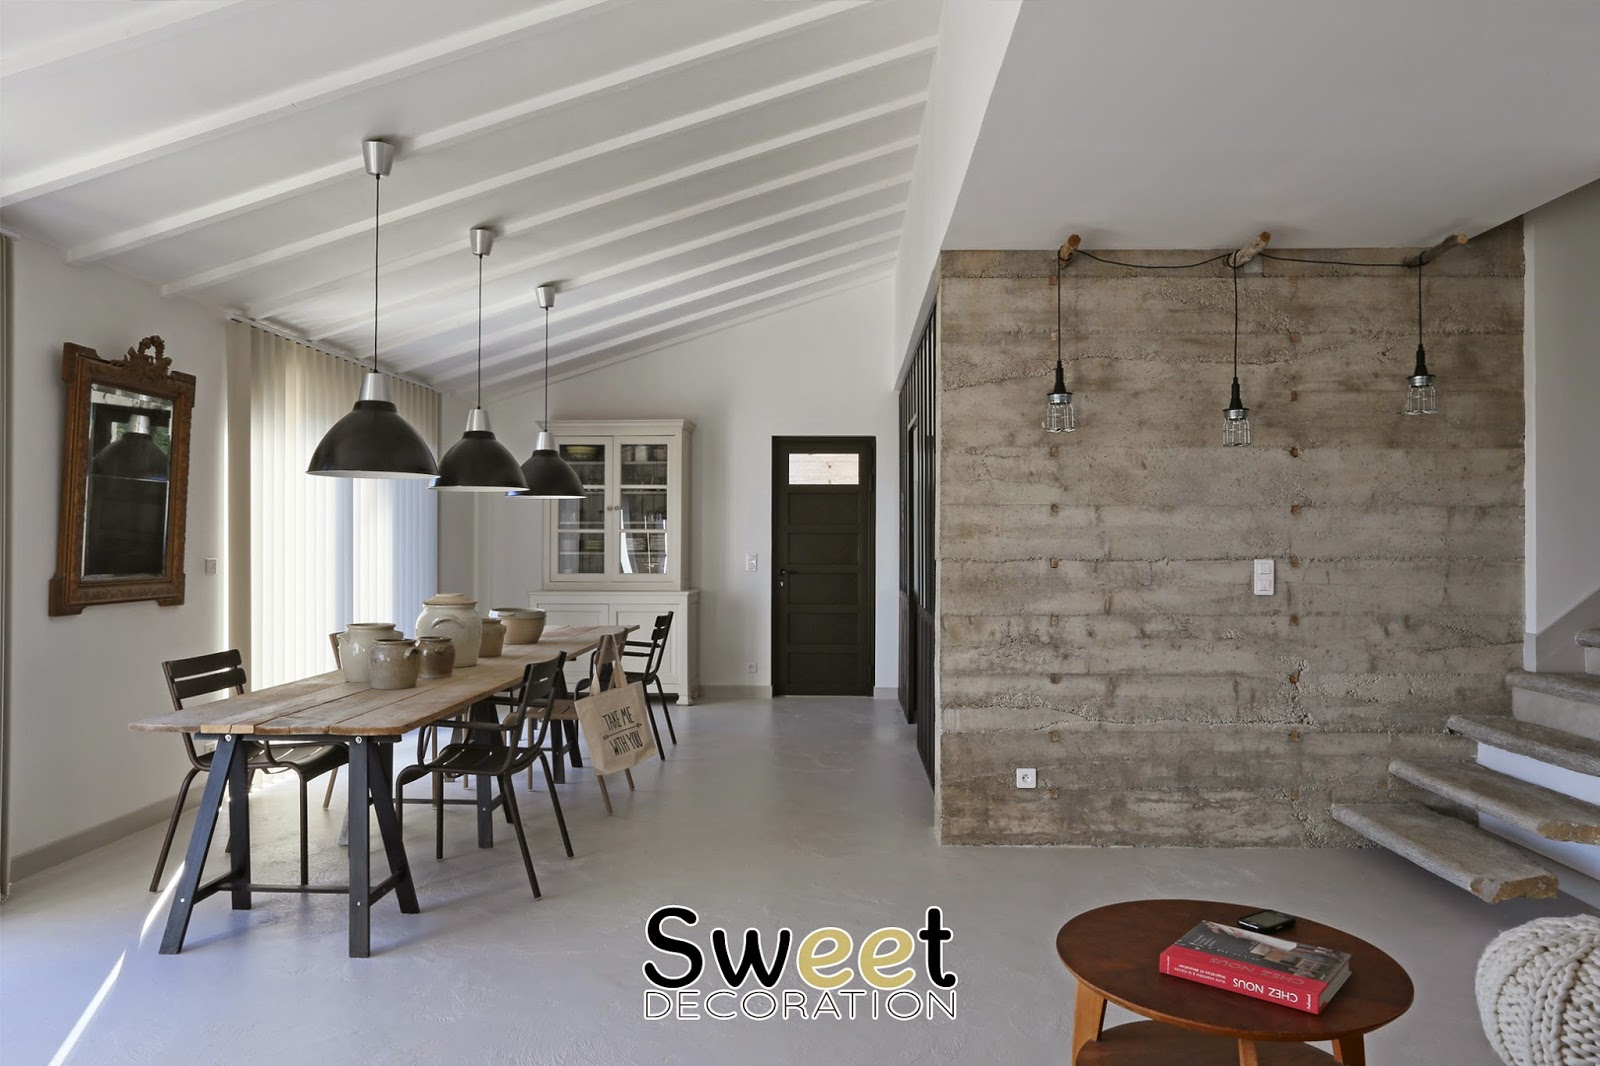 Am nagement int rieur d 39 une maison contemporaine sweet for Photos interieur